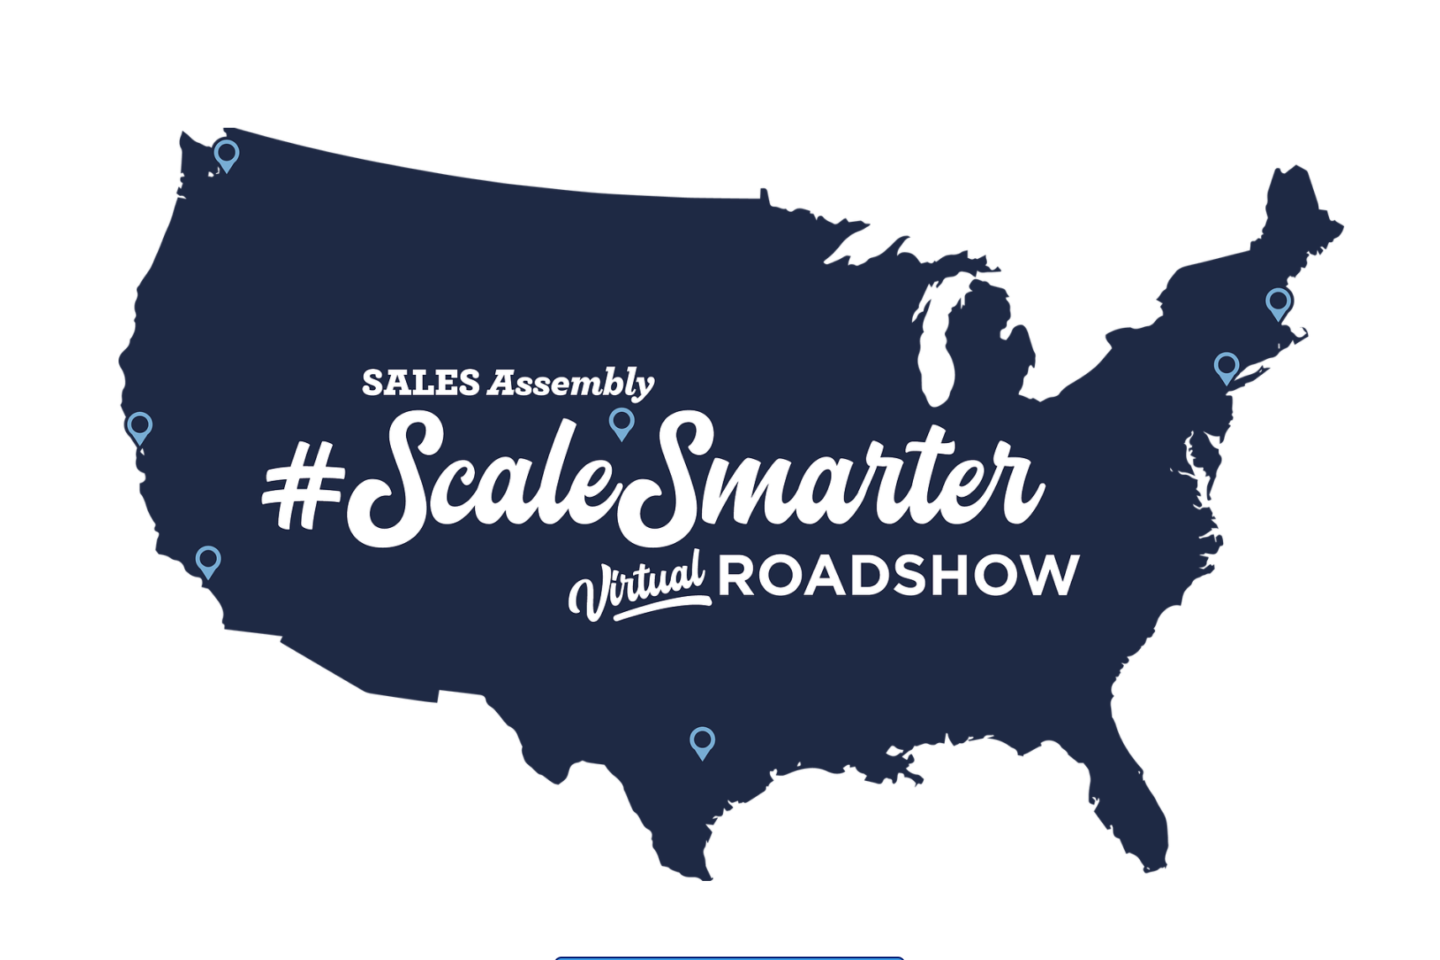 Sales Assembly #ScaleSmarter Virtual Roadshow